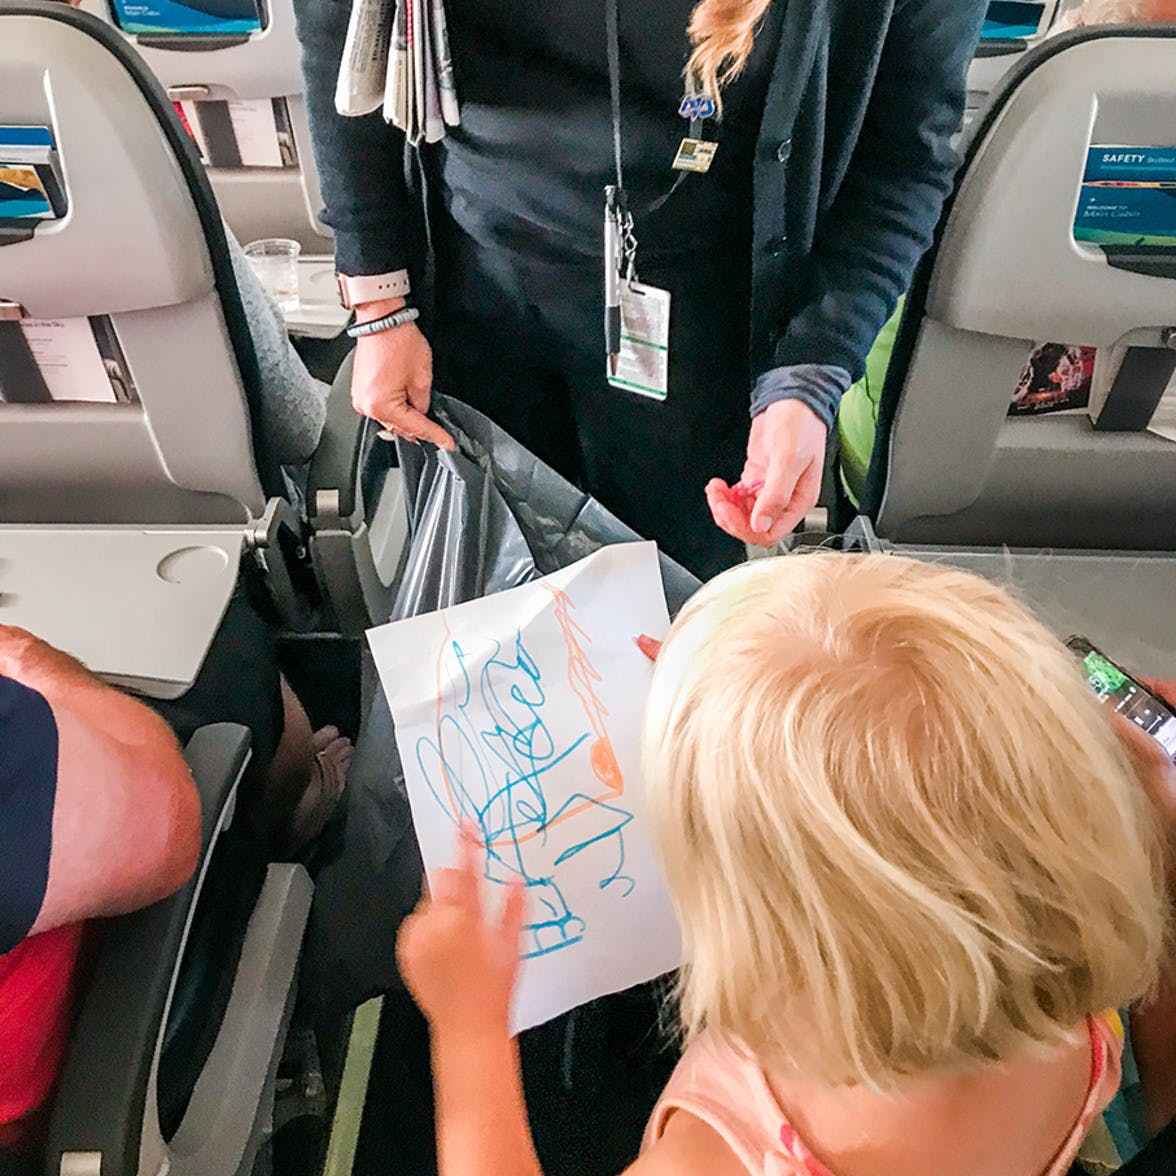 Child talking to the flight attendant in an air plane